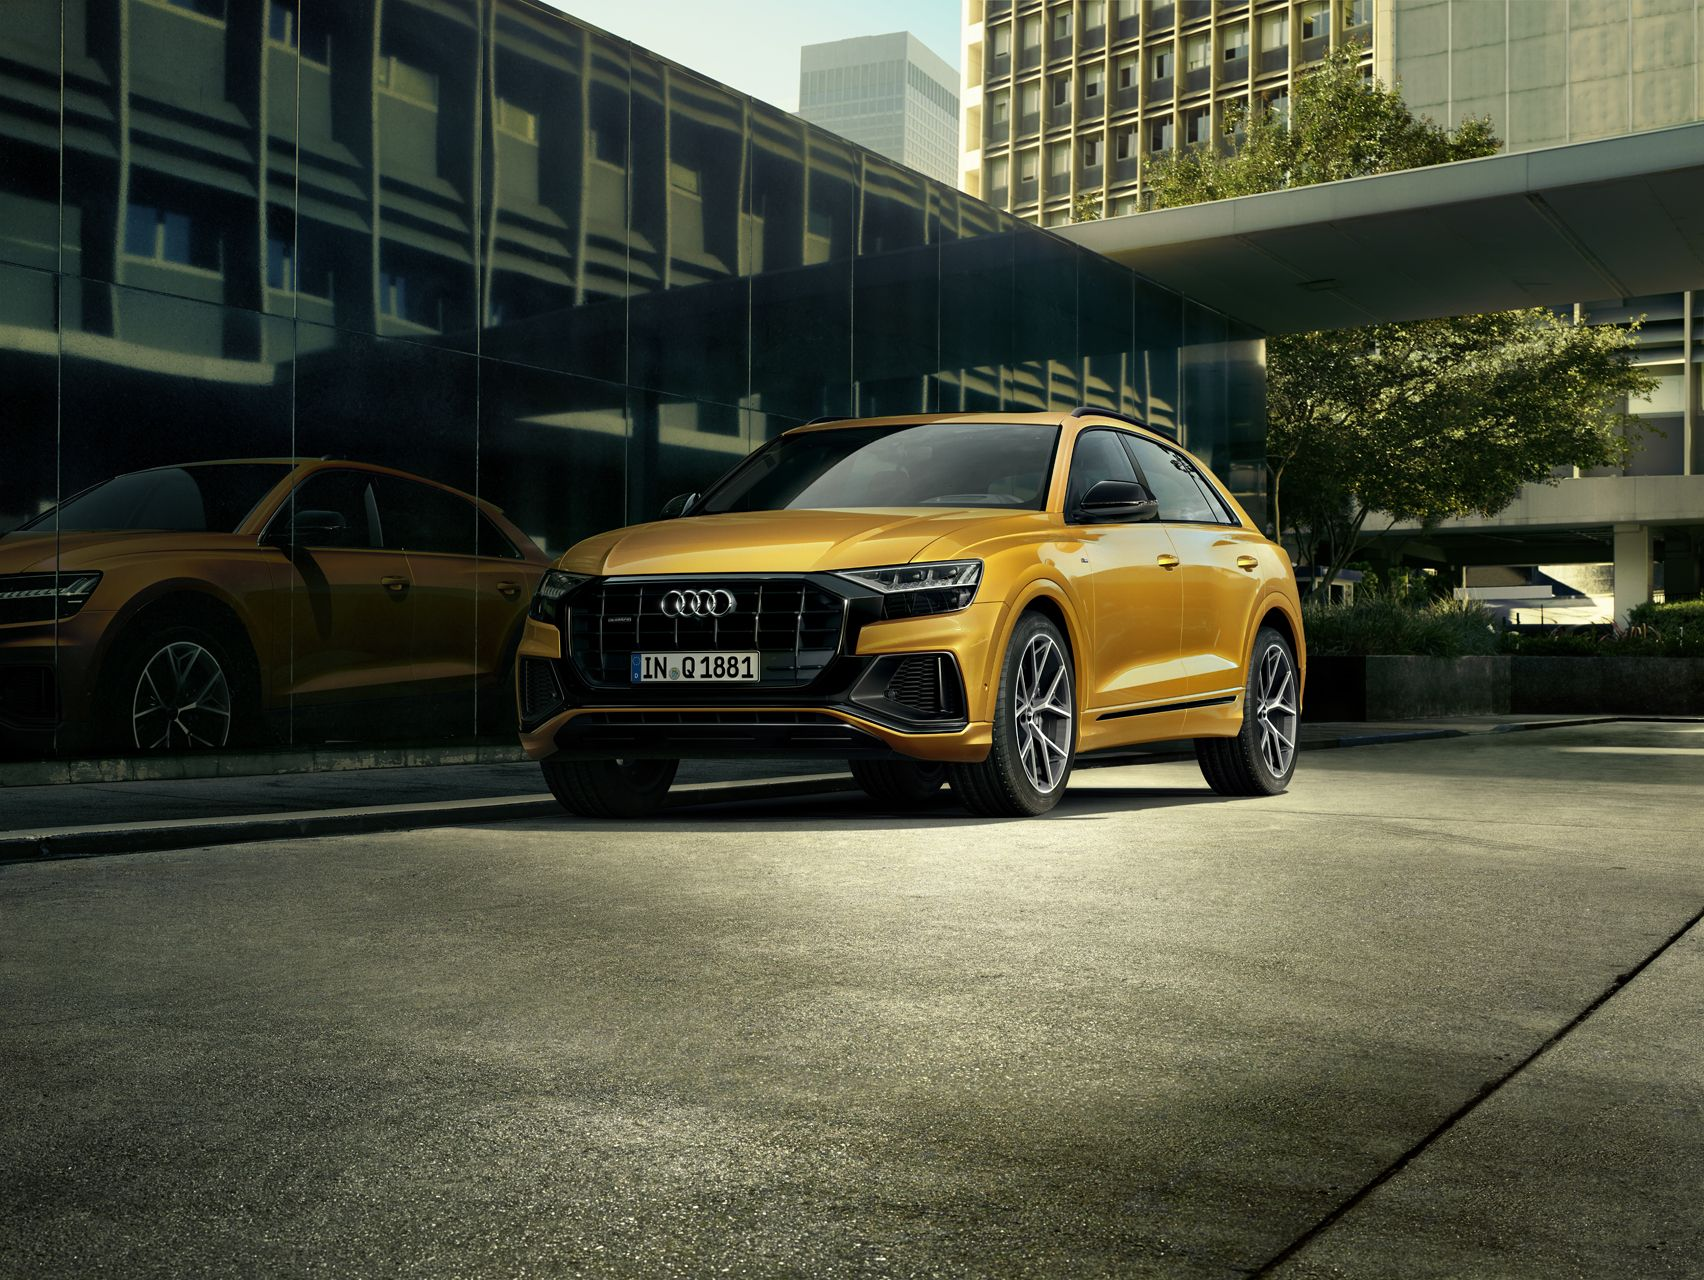 Lord Of The Road: The Audi Q8 Is Beautiful, Daring, And Audacious